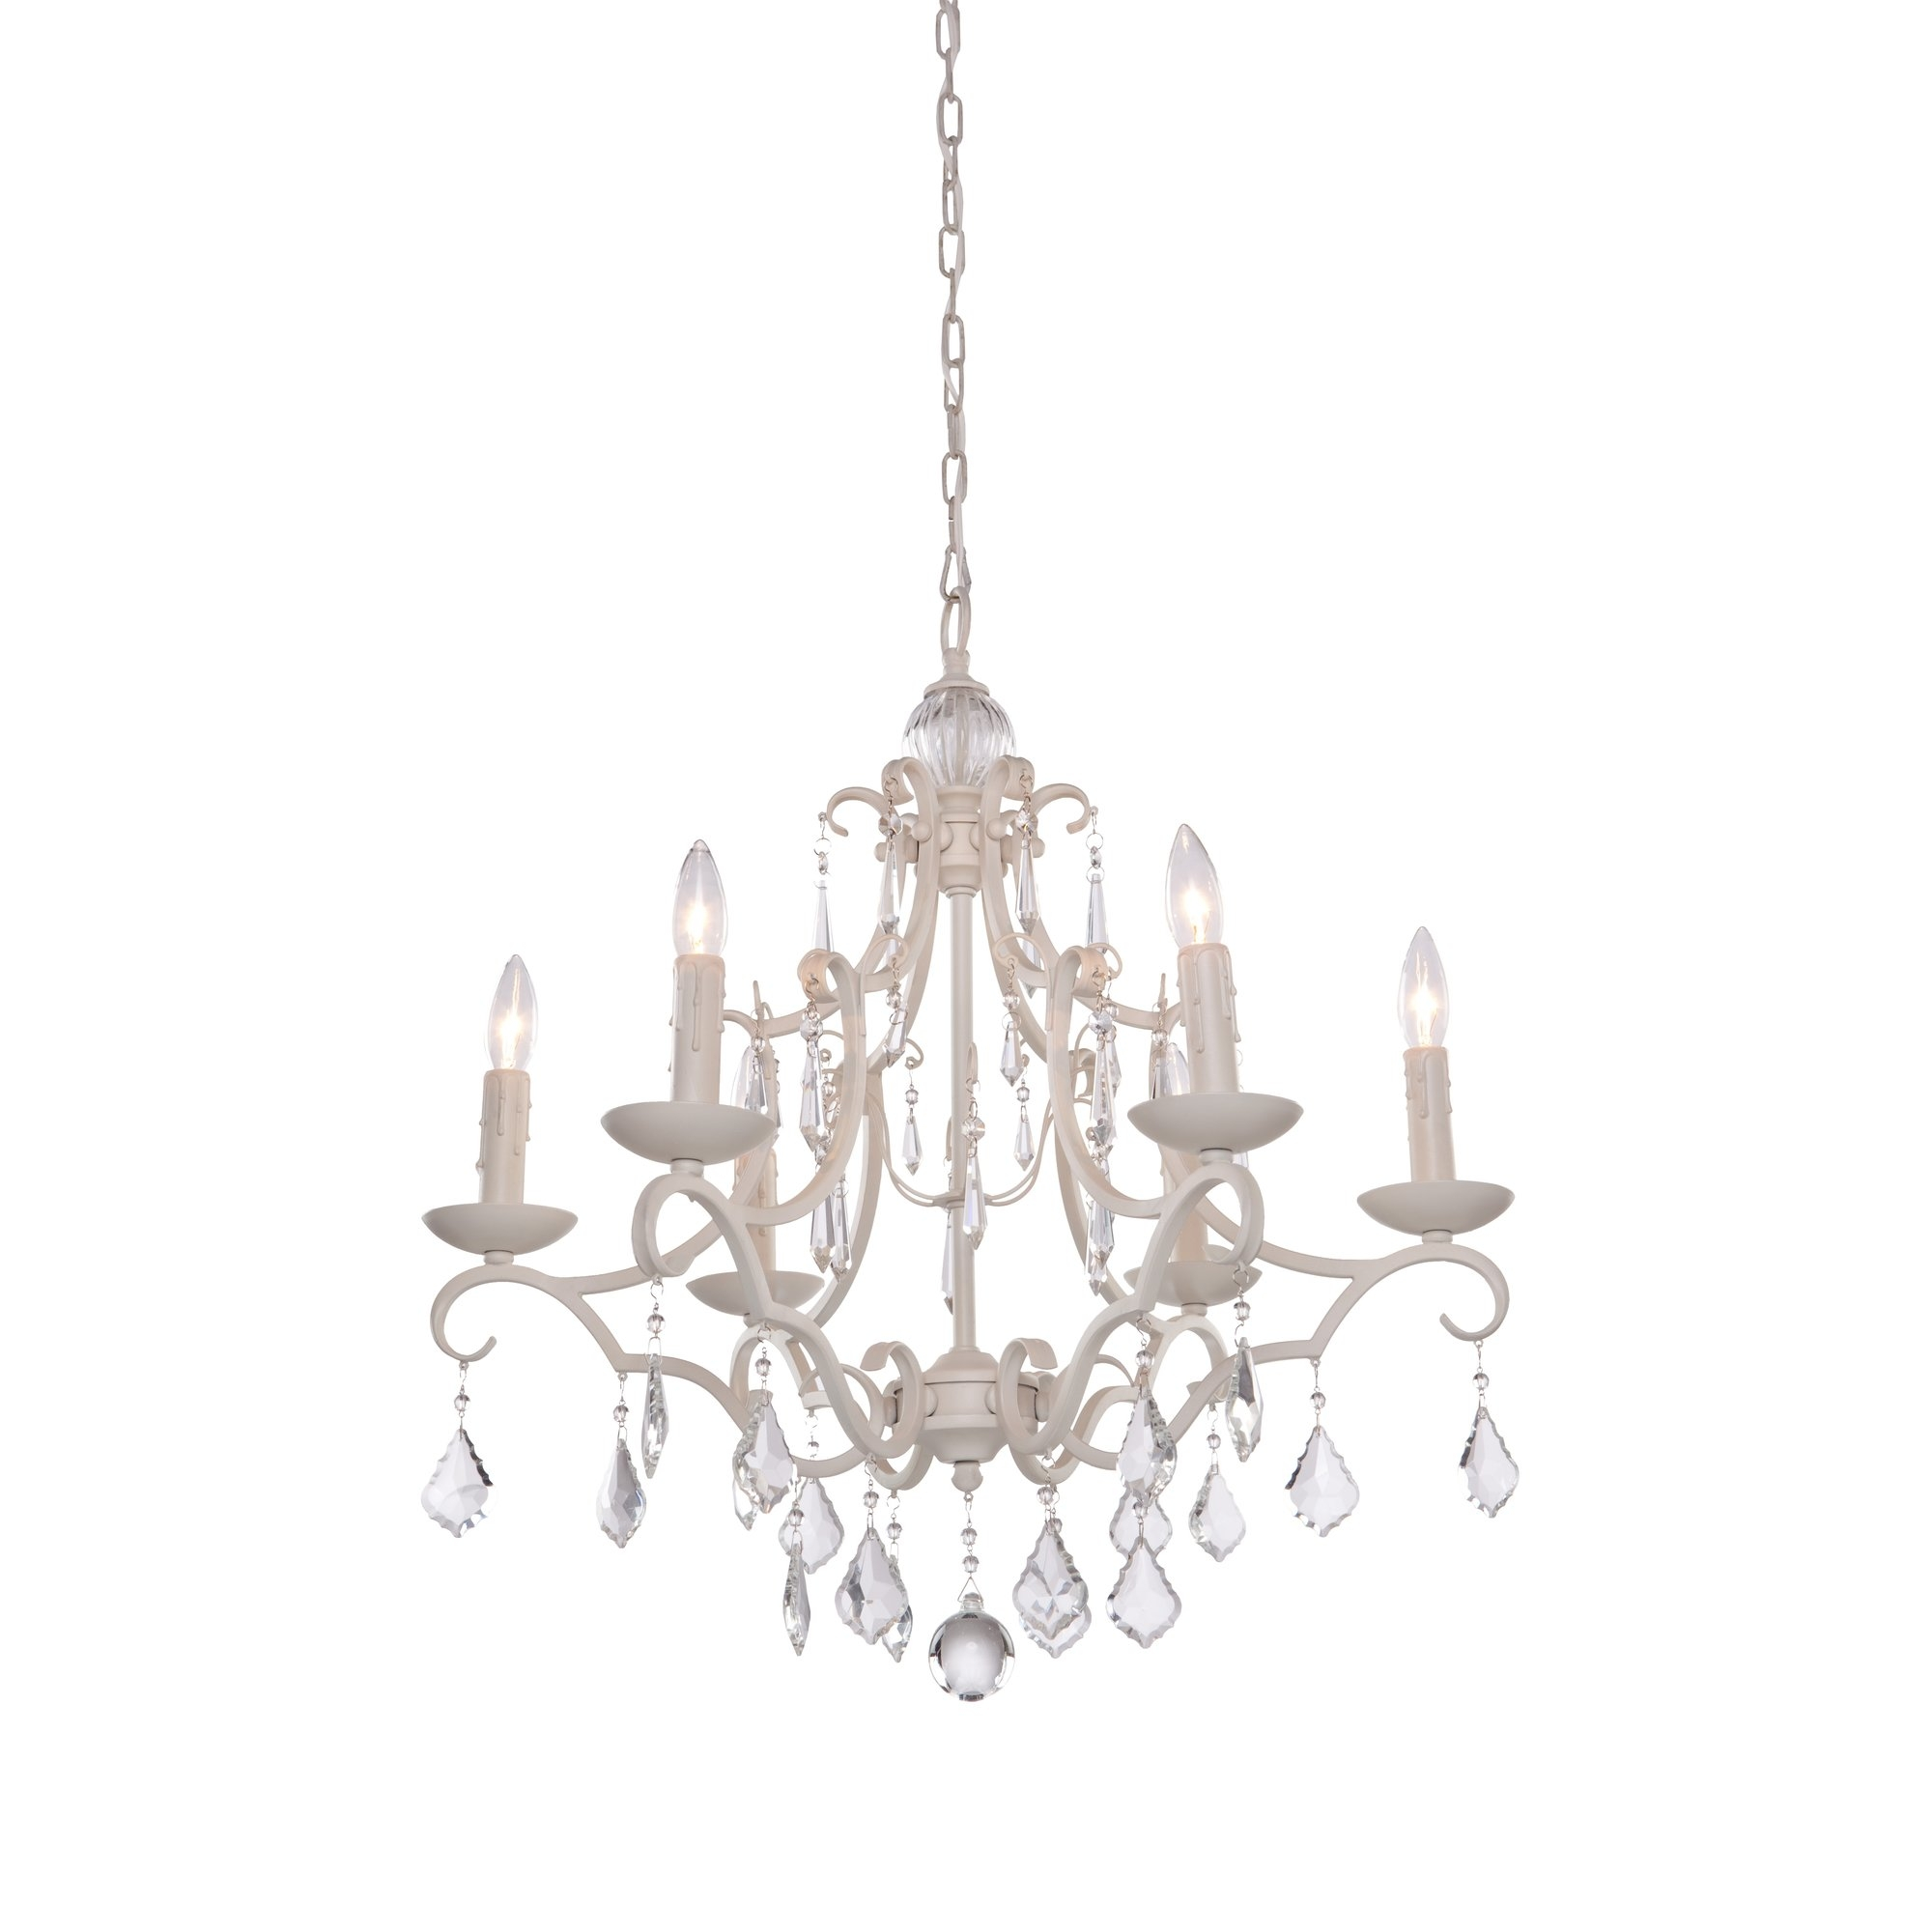 Featured Image of Vintage Style Chandelier